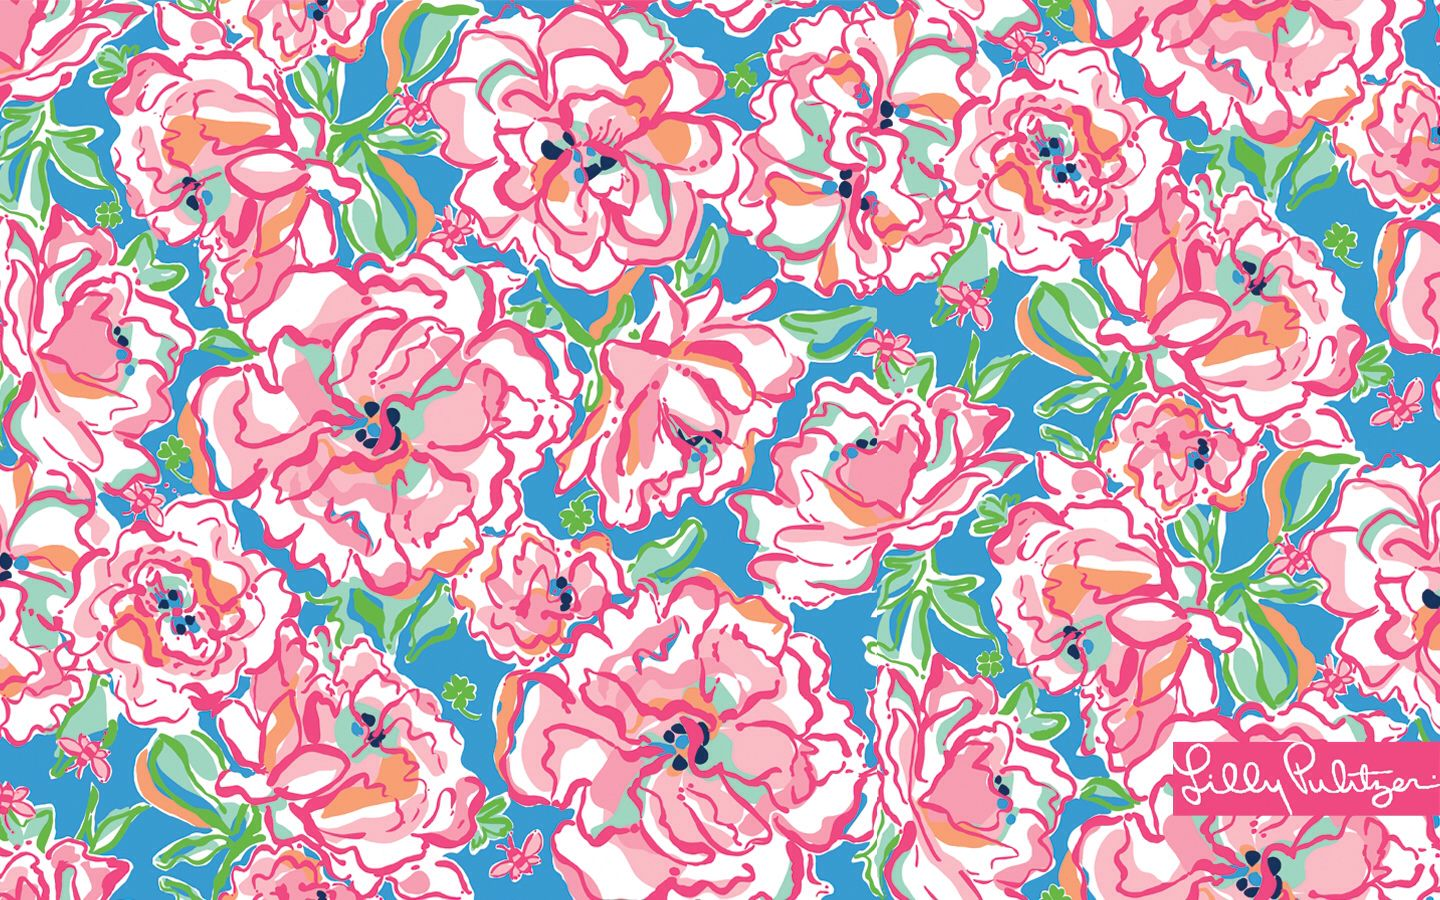 lilly pulitzer background | Phone wallpapers | Pinterest